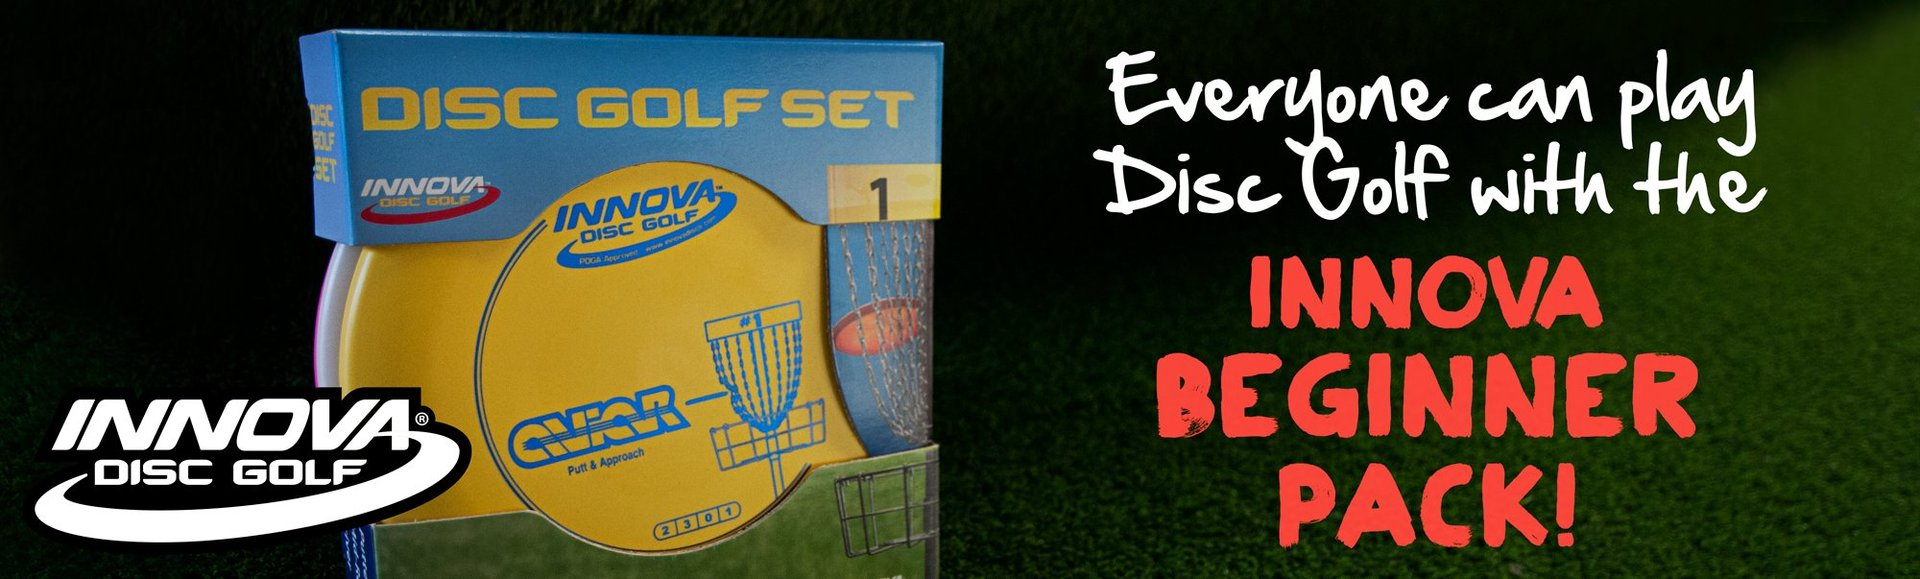 Disc Golf Innova Starter Set